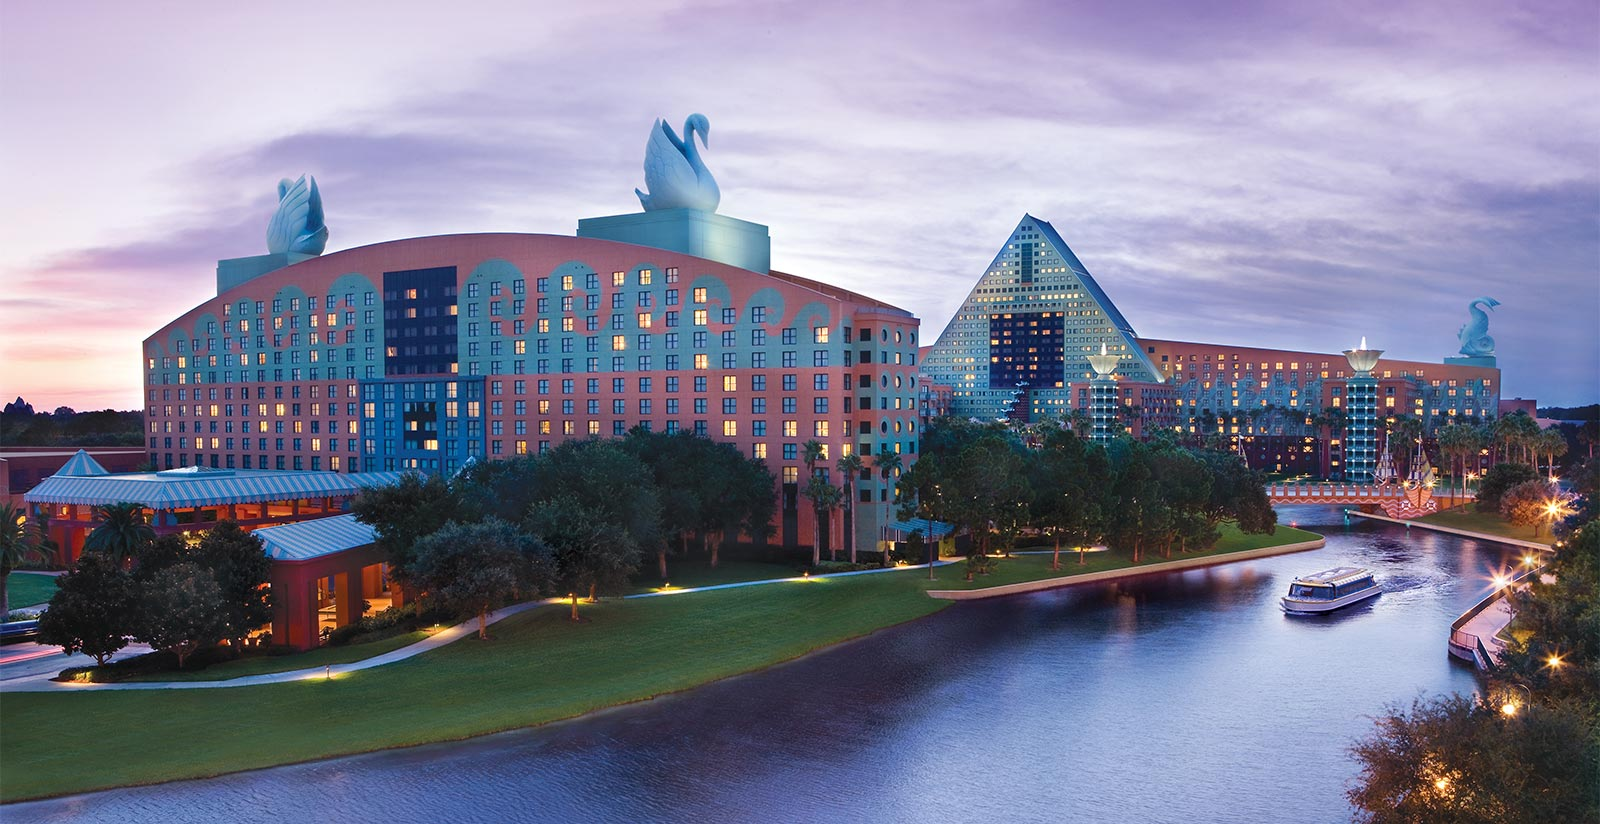 349 Rooms Being Added to Disney World's Swan Resort (More Opportunity to Use Hotel Points to Save at Disney!)